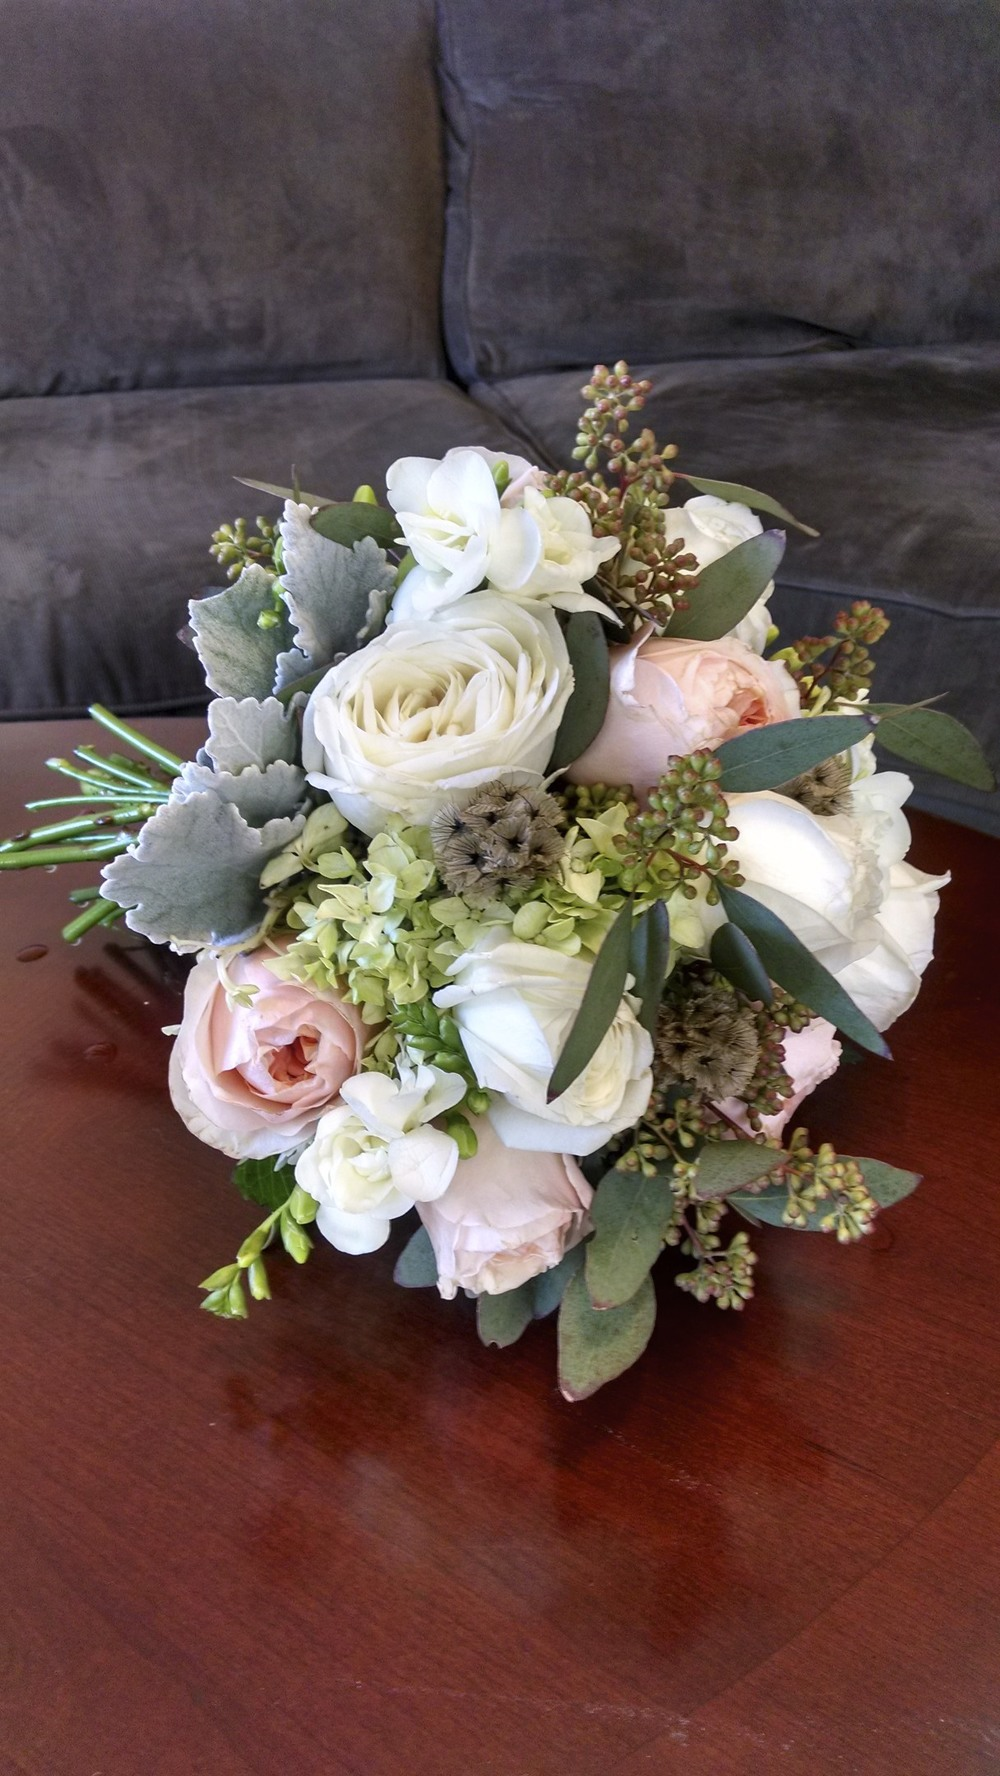 Garden Roses, Freesia, seeded Eucalyptus, Dusty Miller, Scabiosa seedpods.